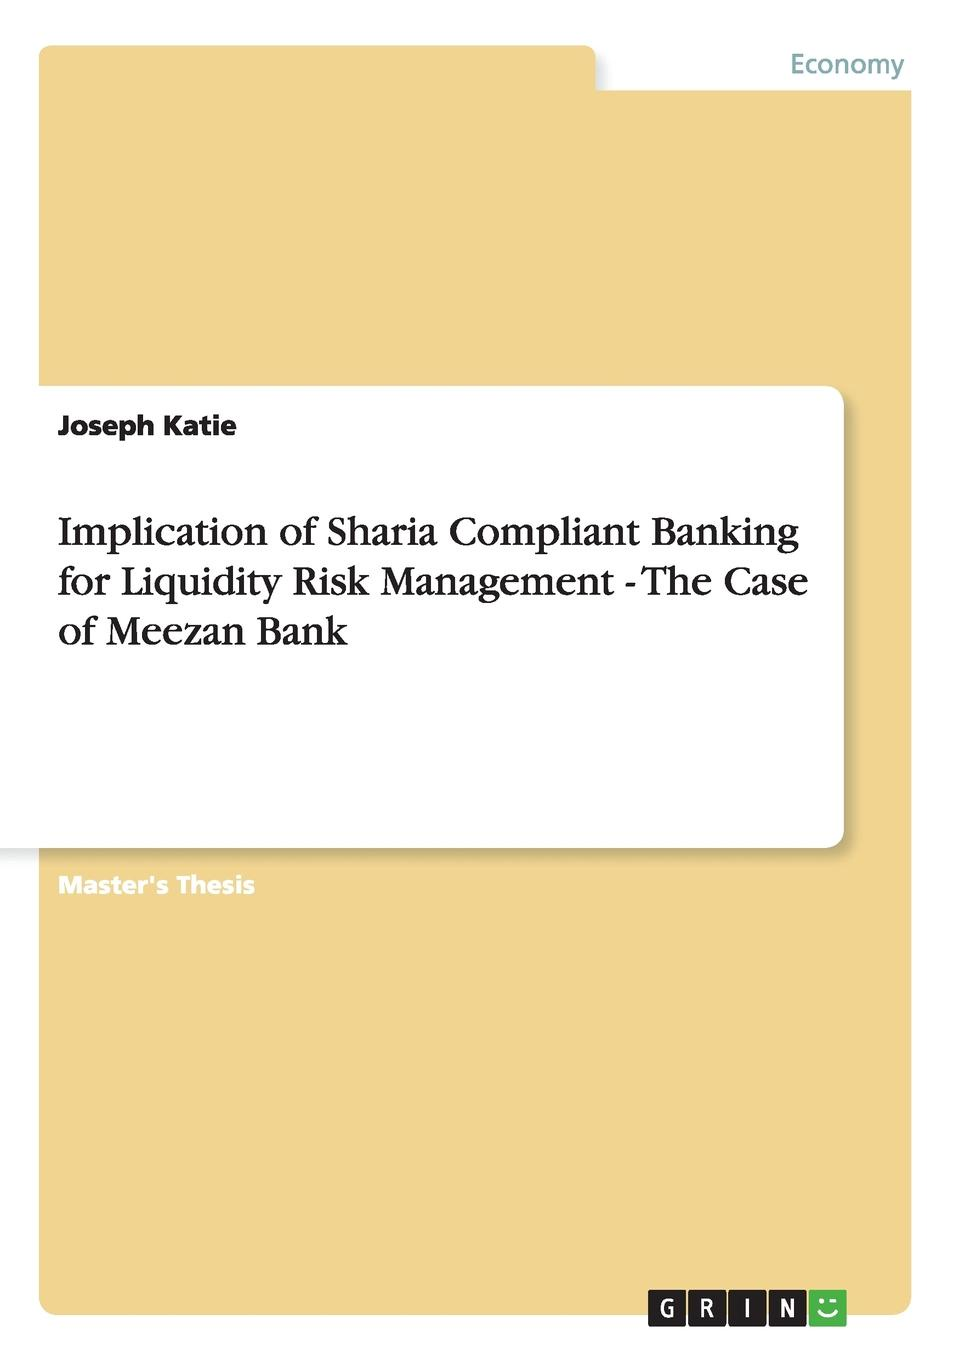 Joseph Katie Implication of Sharia Compliant Banking for Liquidity Risk Management - The Case of Meezan Bank